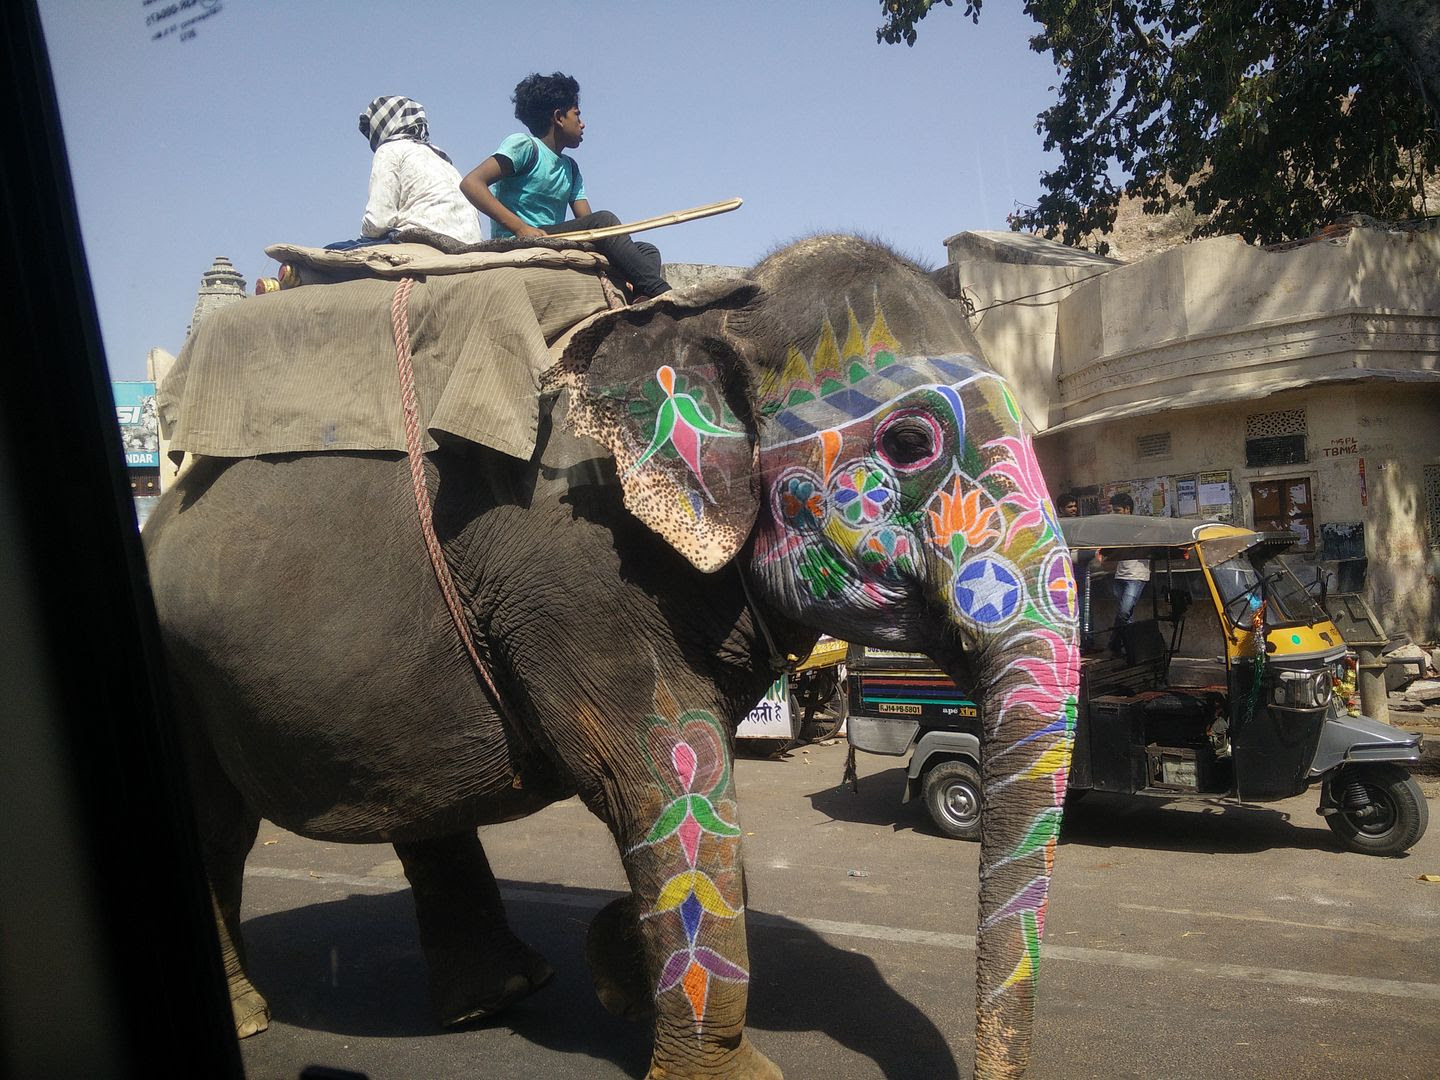 Elephant in Jaipur photo IMG_20150509_145510_zpsf7jrnht6.jpg